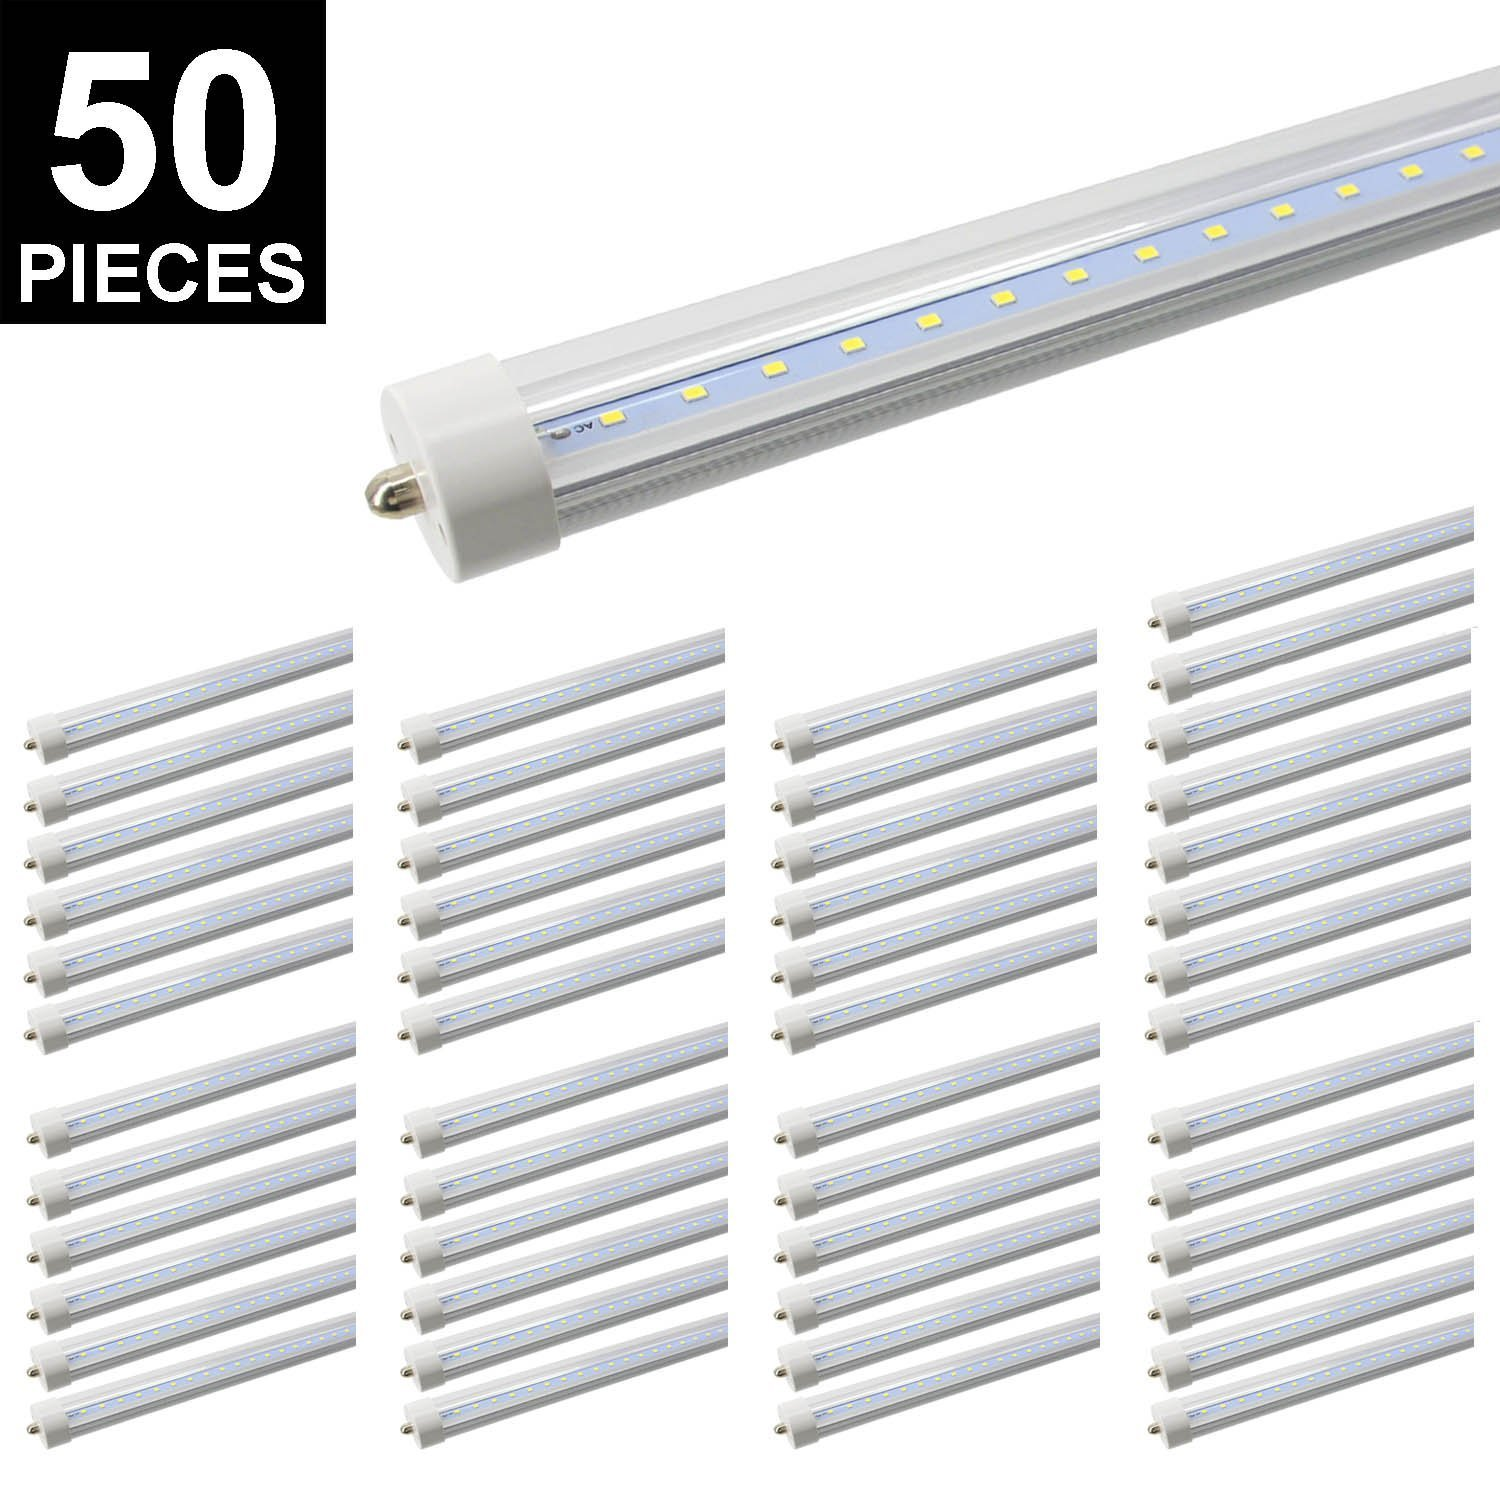 CNSUNWAY LIGHTING 8ft LED Tube, 96'' 45Watt T8 FA8 Single Pin LED Bulbs With Clean Cover, 4800LM Super Bright 6000K Cool White … (50-Pack)